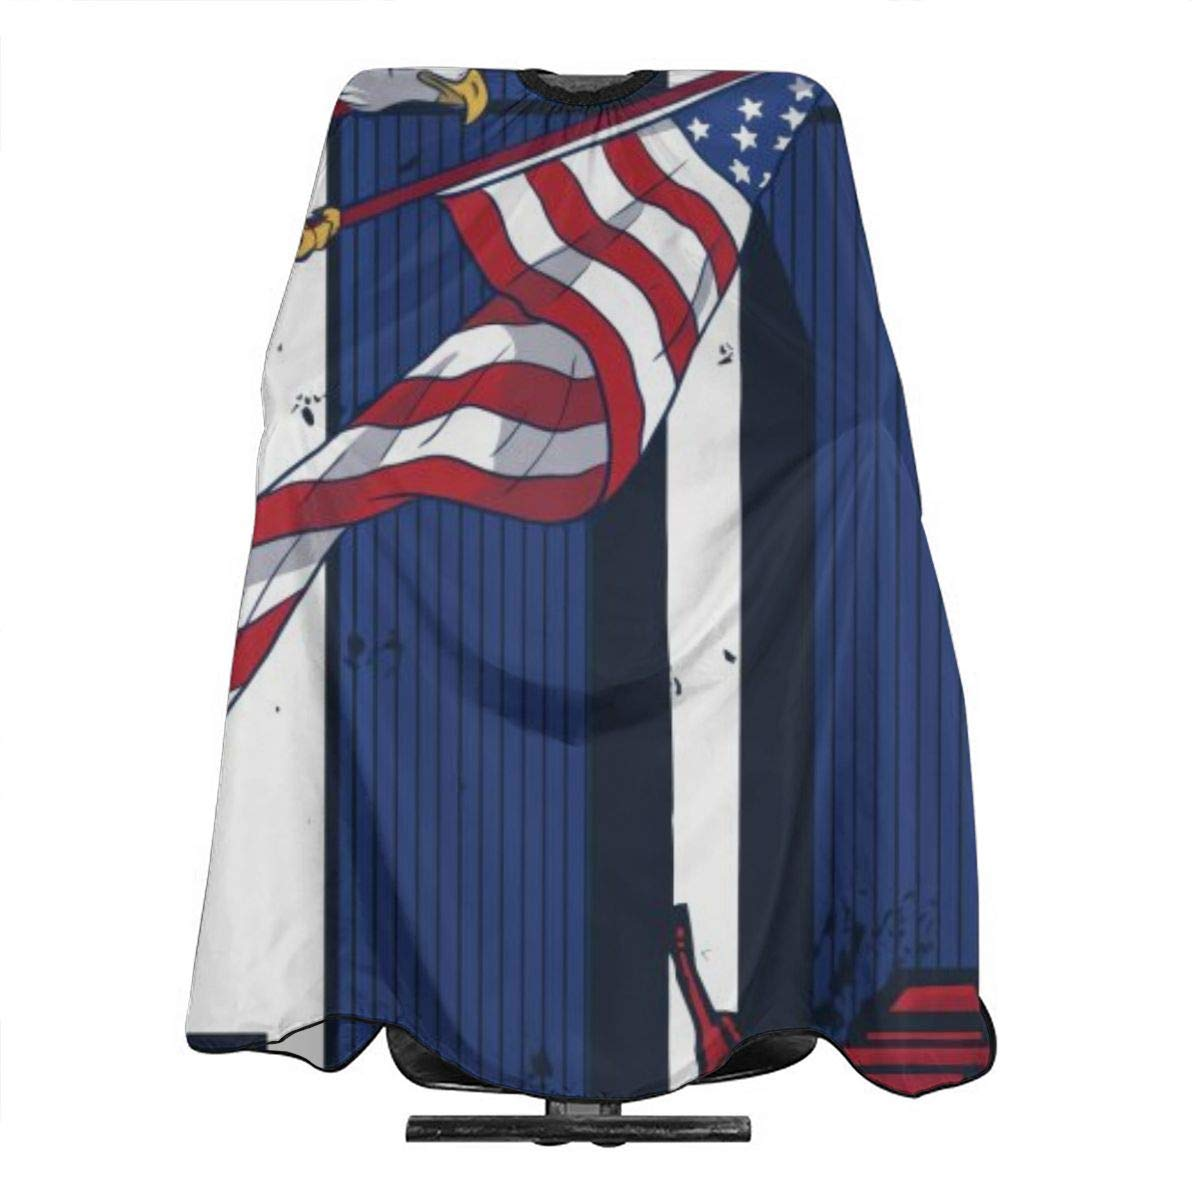 """Professional Barber Cape Salon Hair Styling Cutting Haircut Aprons USA American Flag Capes For Proof Hairdresser Coloring Perming Shampoo Chemical 55"""""""" X 66 : Beauty"""